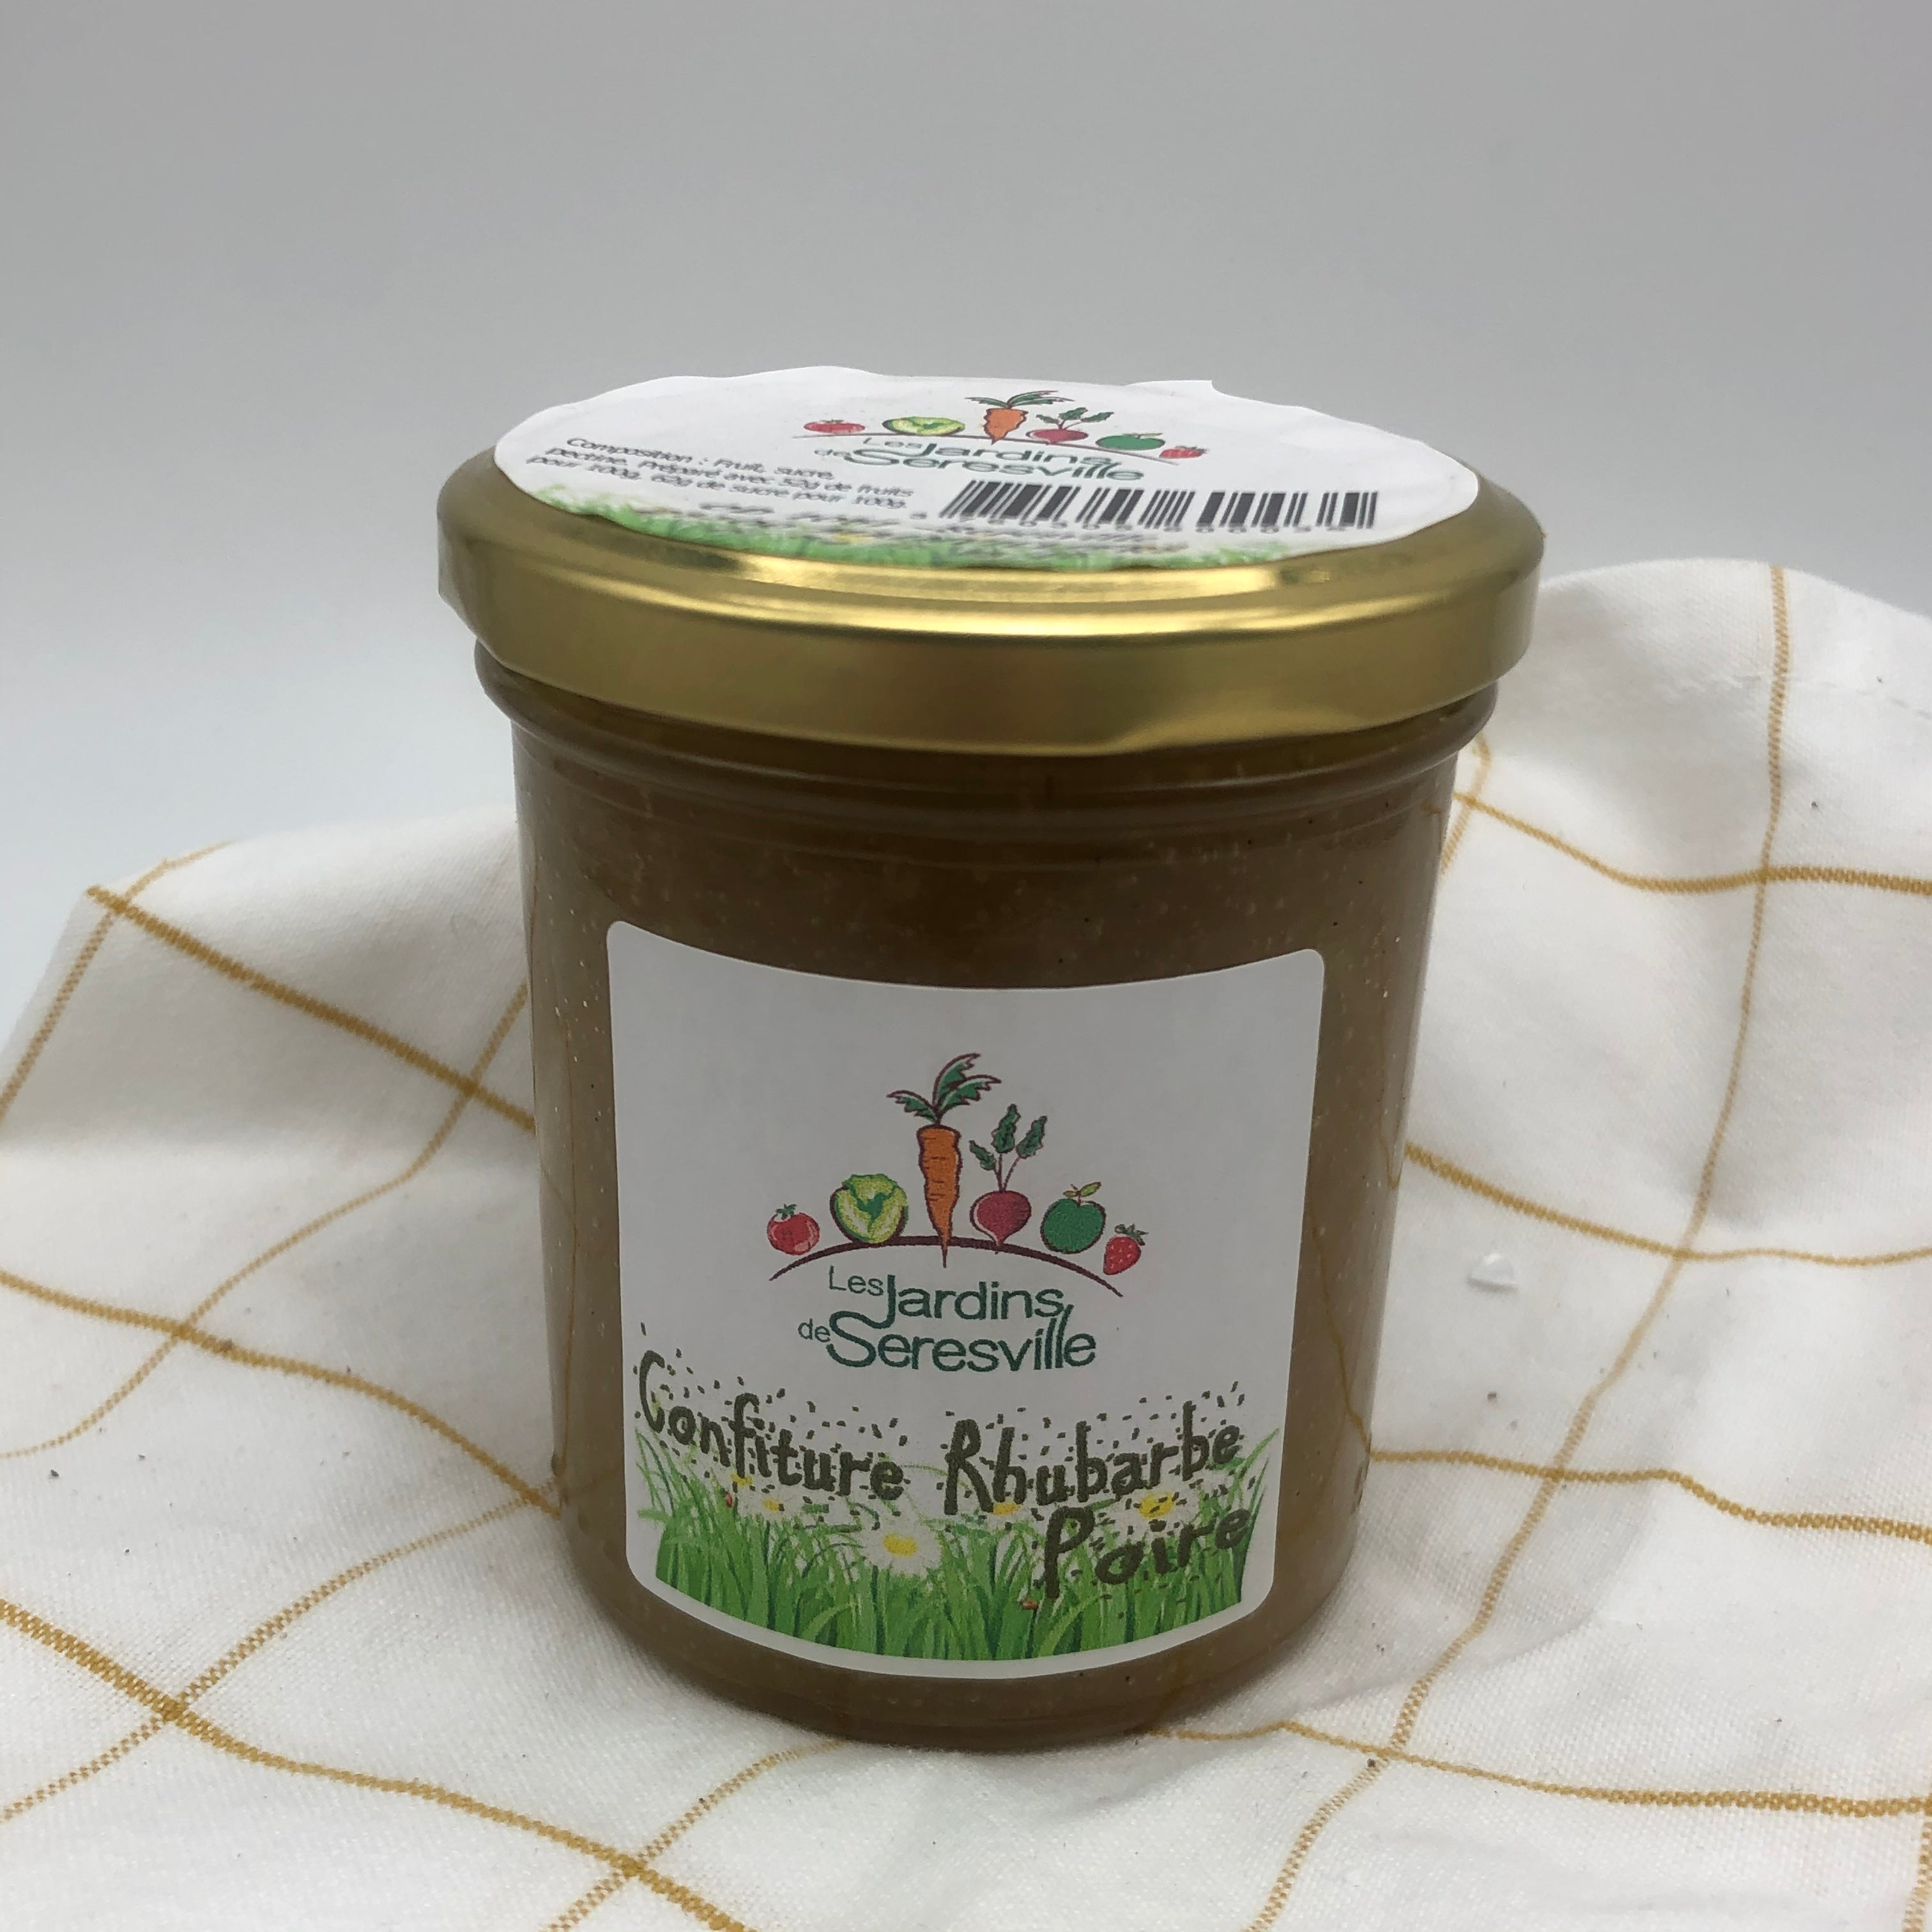 Confiture rhubarbe poire